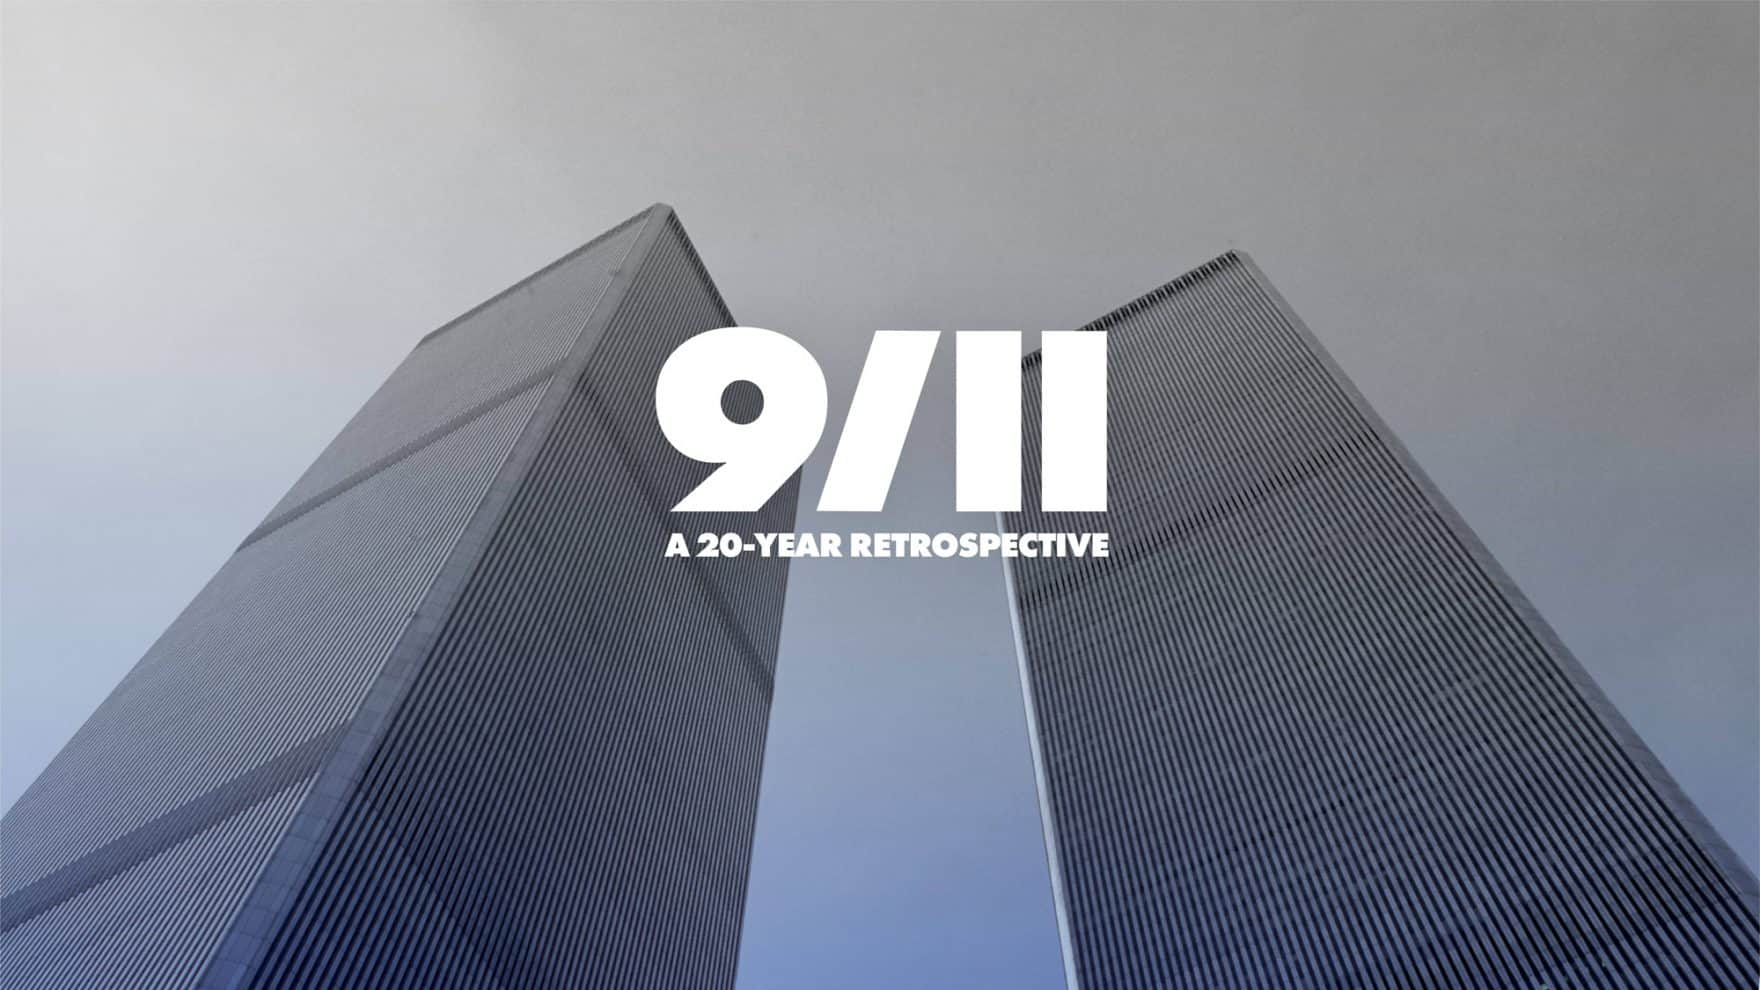 Regent University to Host Virtual Event to Commemorate the 20th Anniversary of 9/11